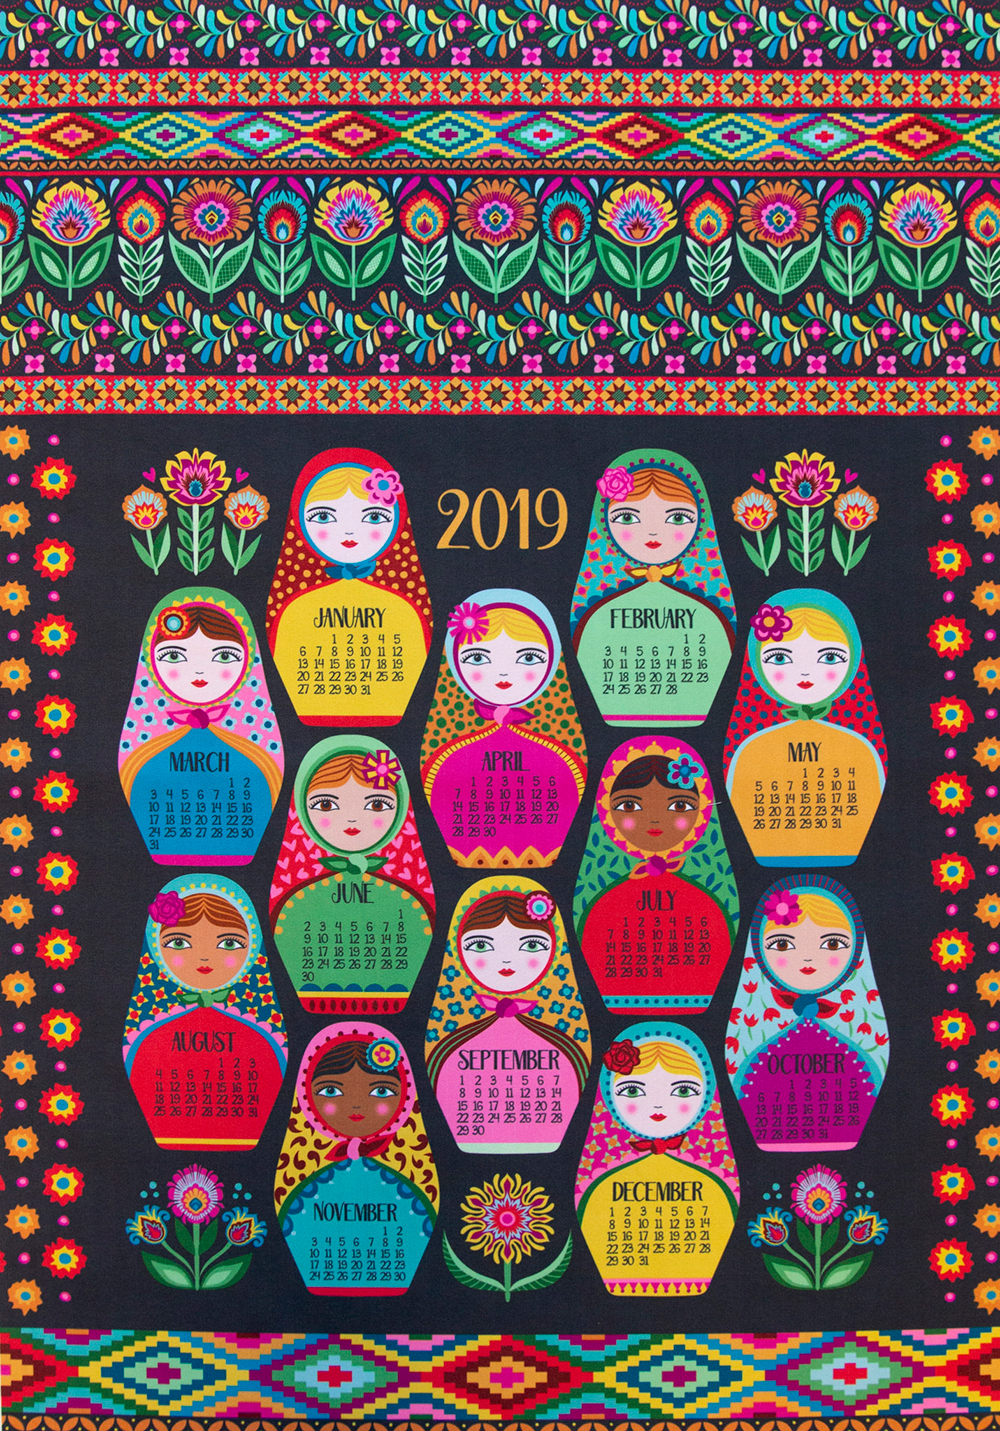 First place in the 2019 Tea Towel Calendar Design Challenge: groovity | Spoonflower Blog